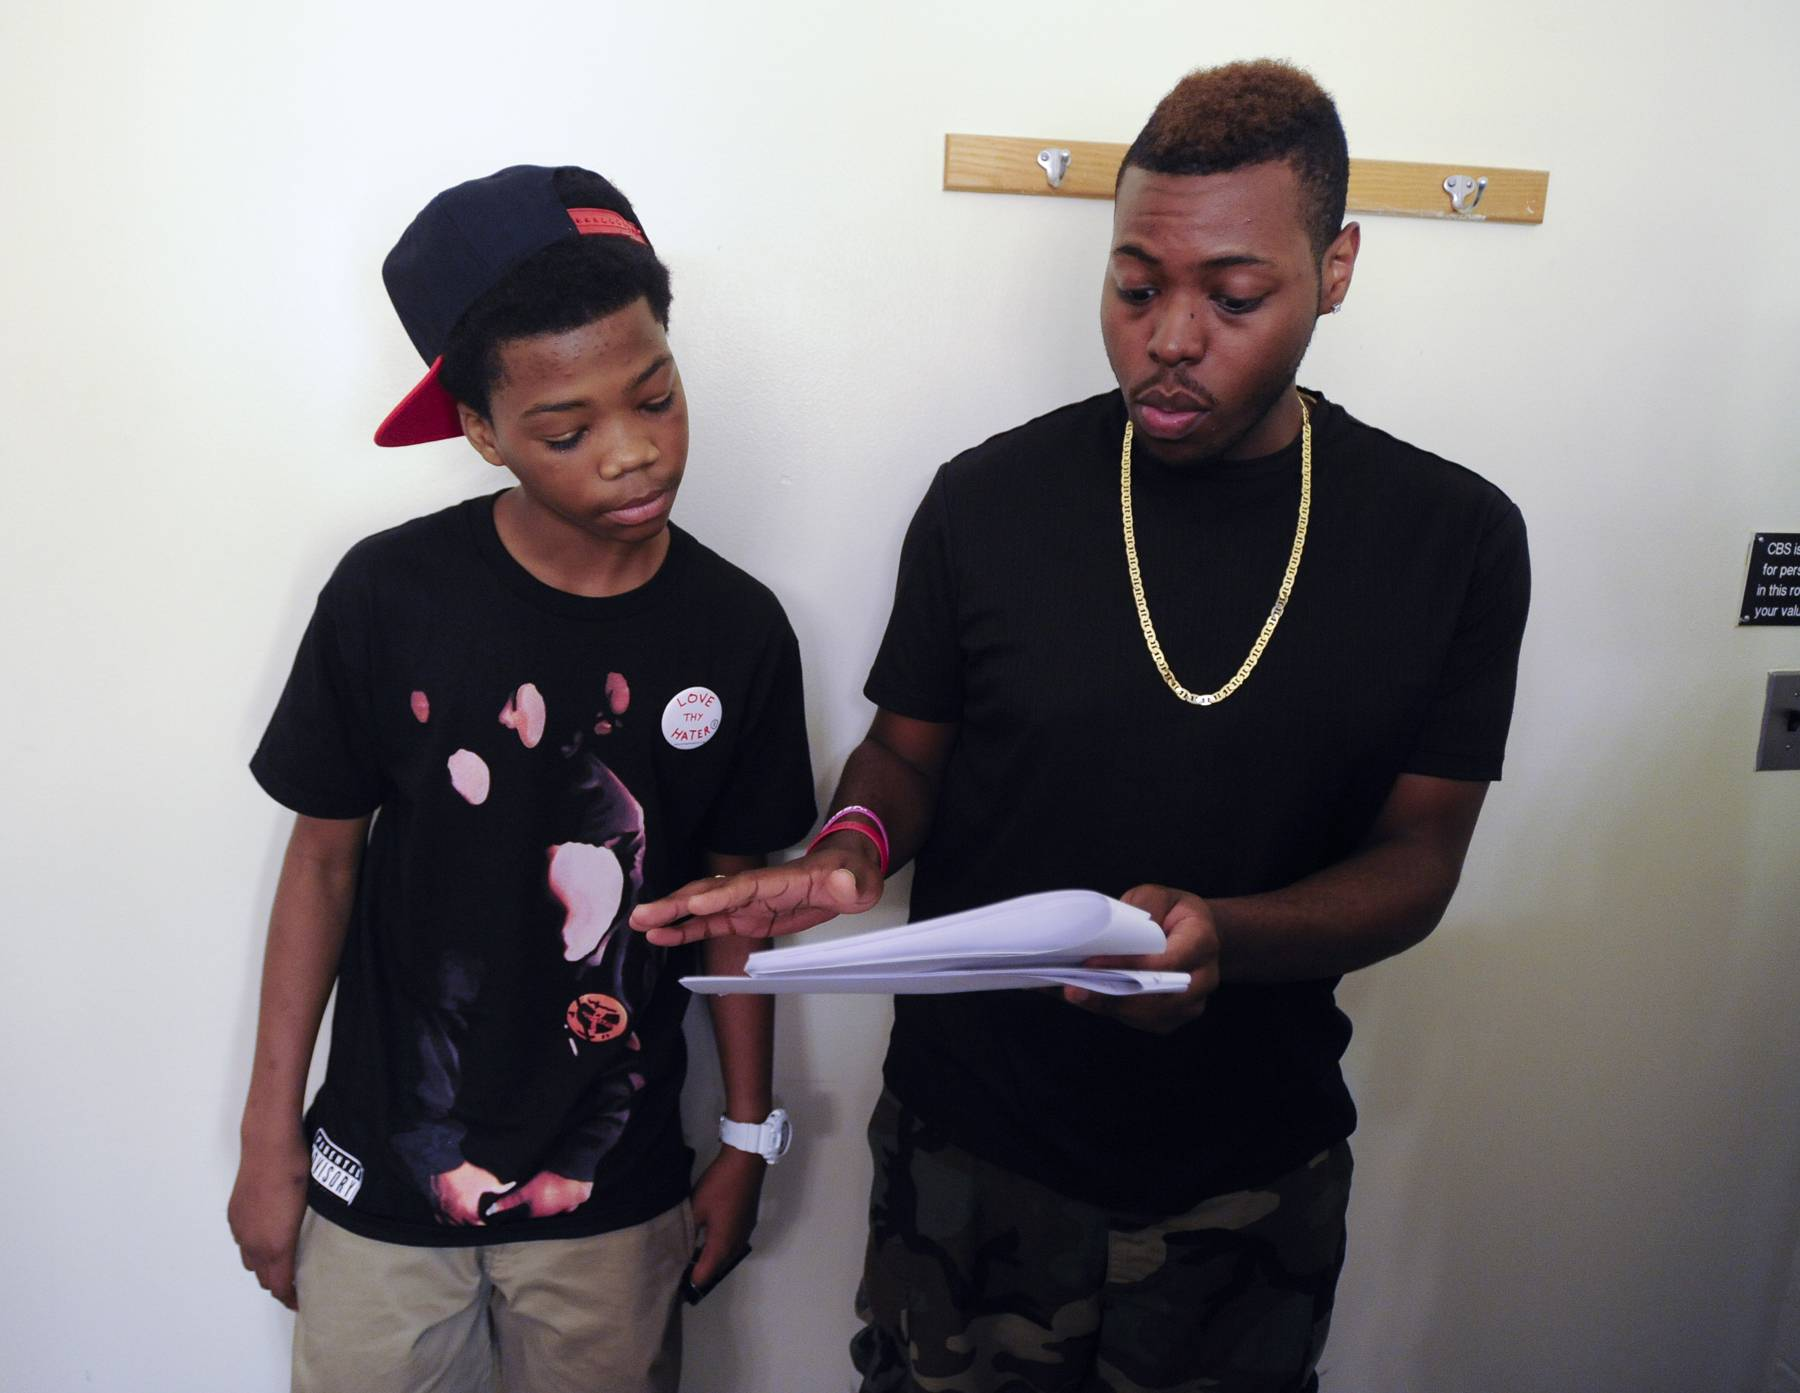 Astro Getting Ready - Production meeting for Astro in the green room at 106 & Park, May 22, 2012. (Photo: John Ricard / BET)